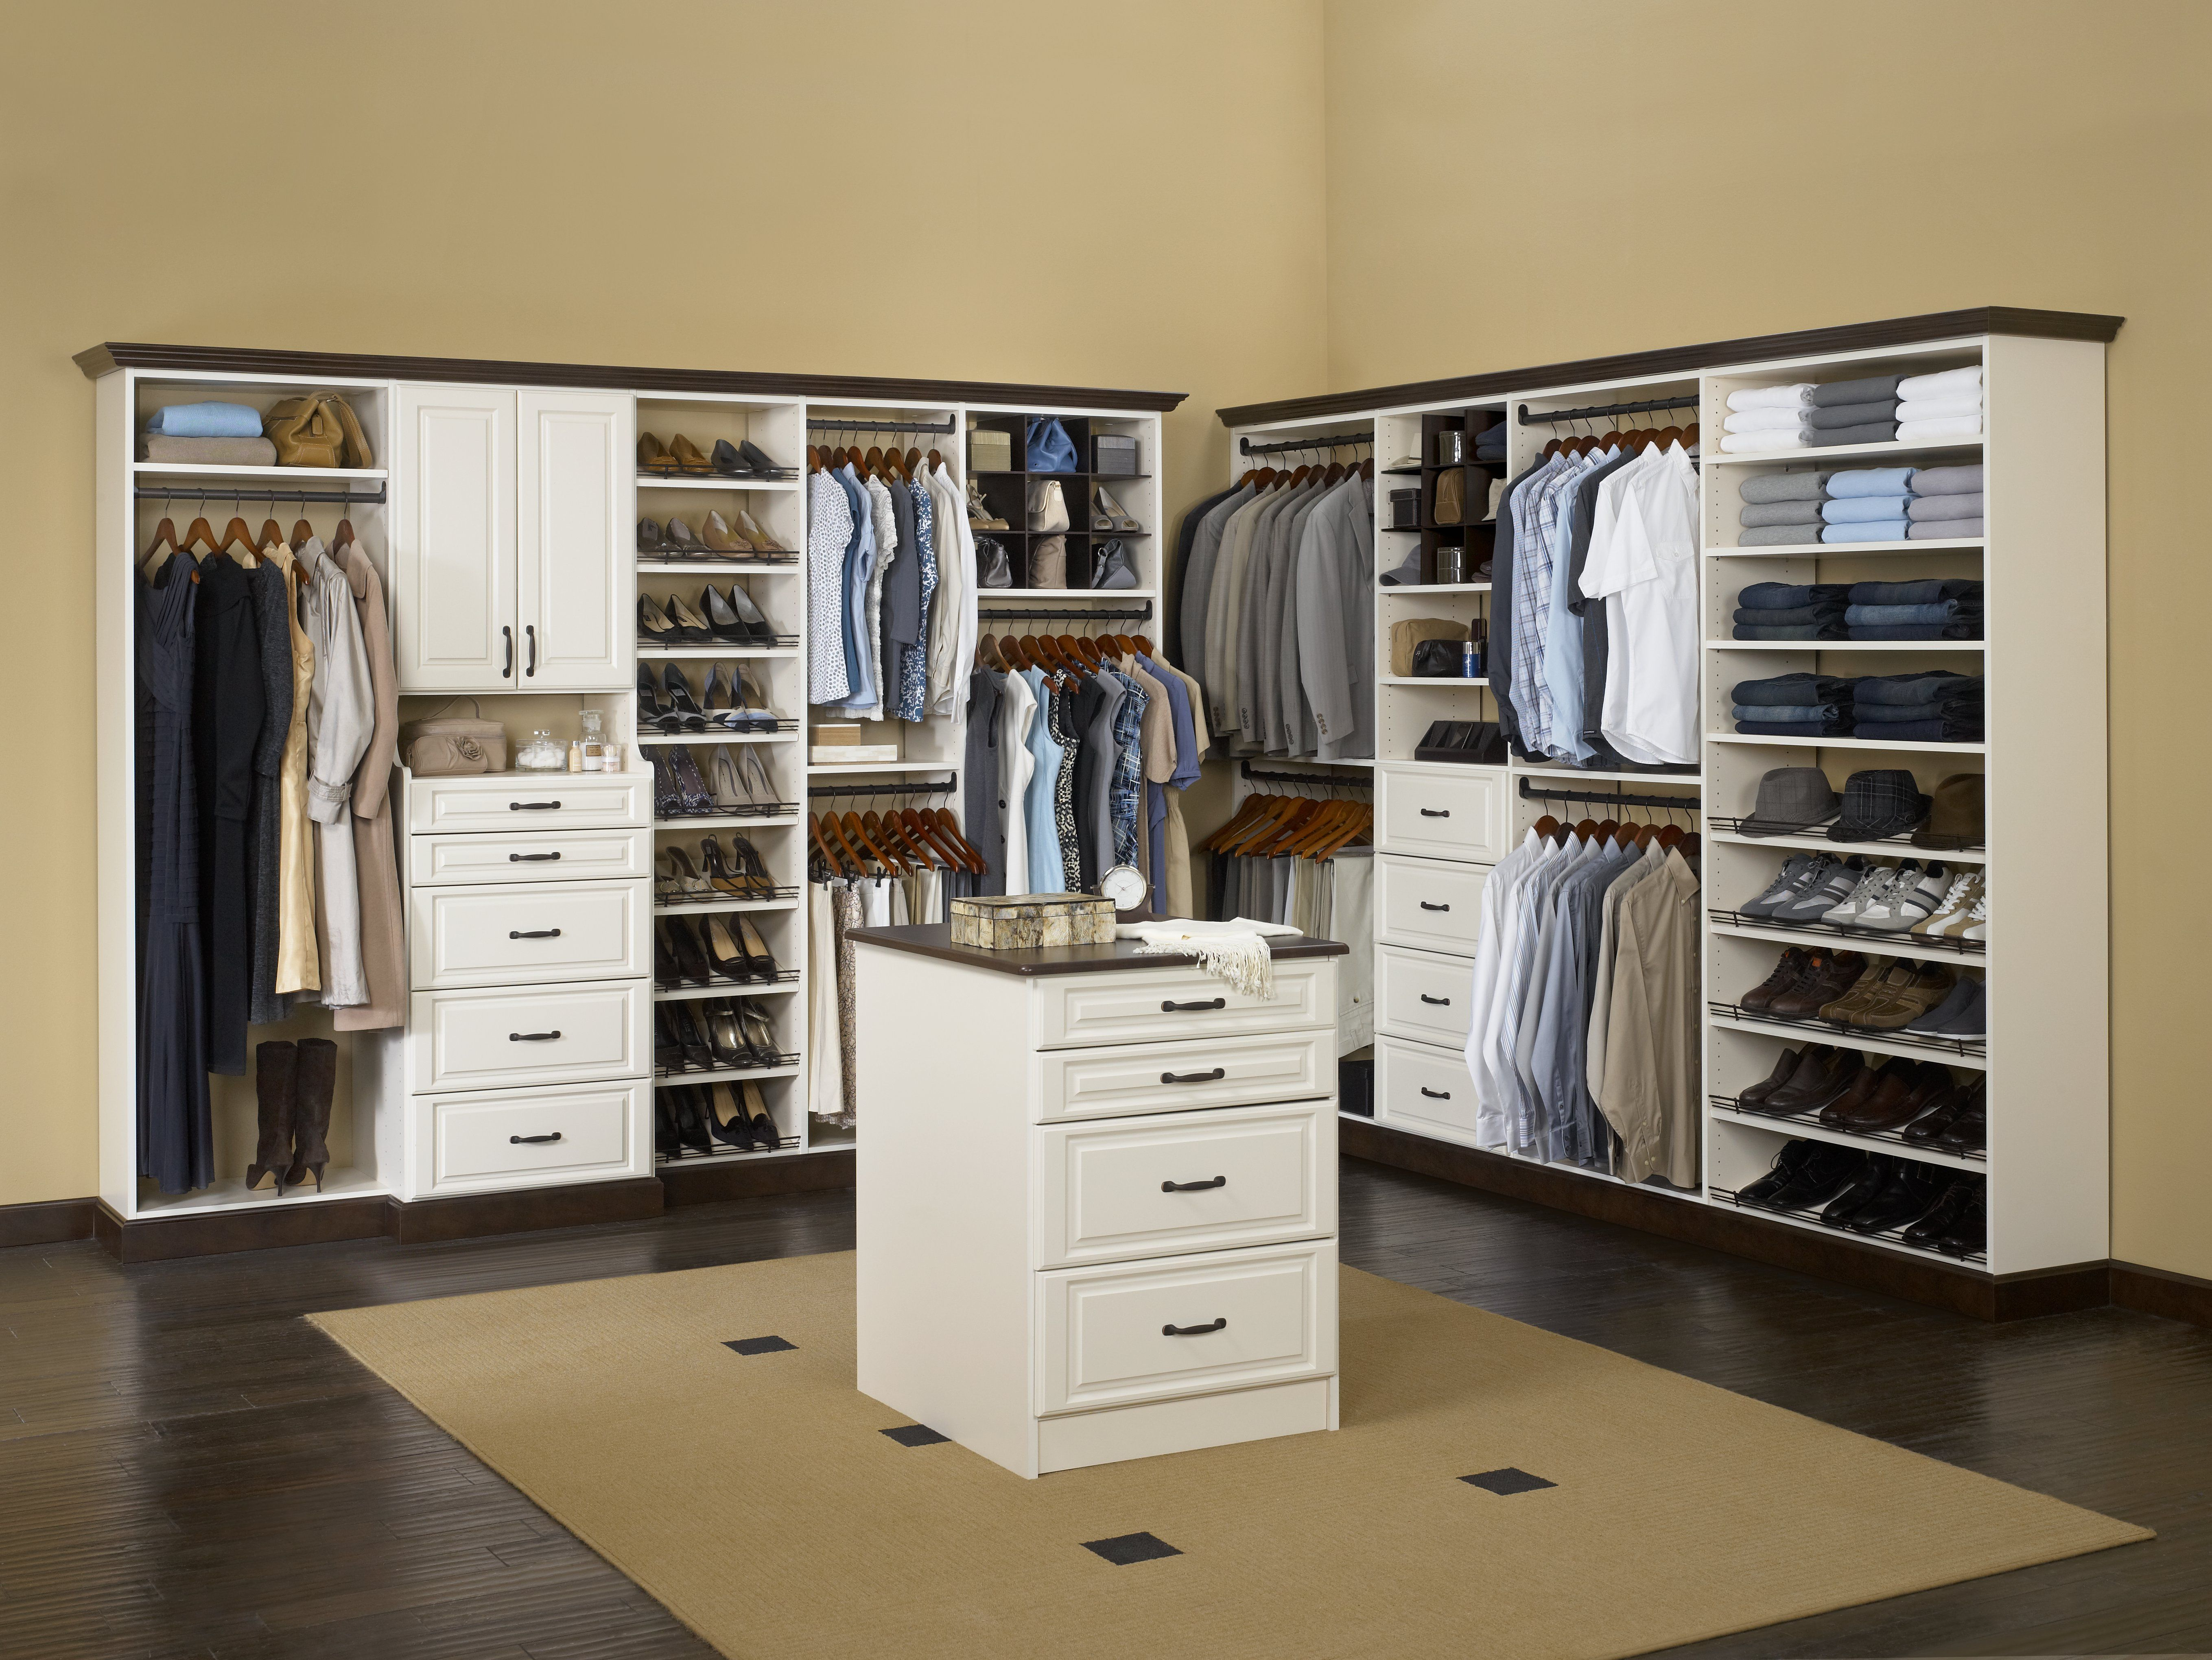 Rubbermaid Custom Closet Systems Available Online On Showroom Partners America S Online Buildi Home Depot Closet Organizer Small Closet Room Home Depot Closet